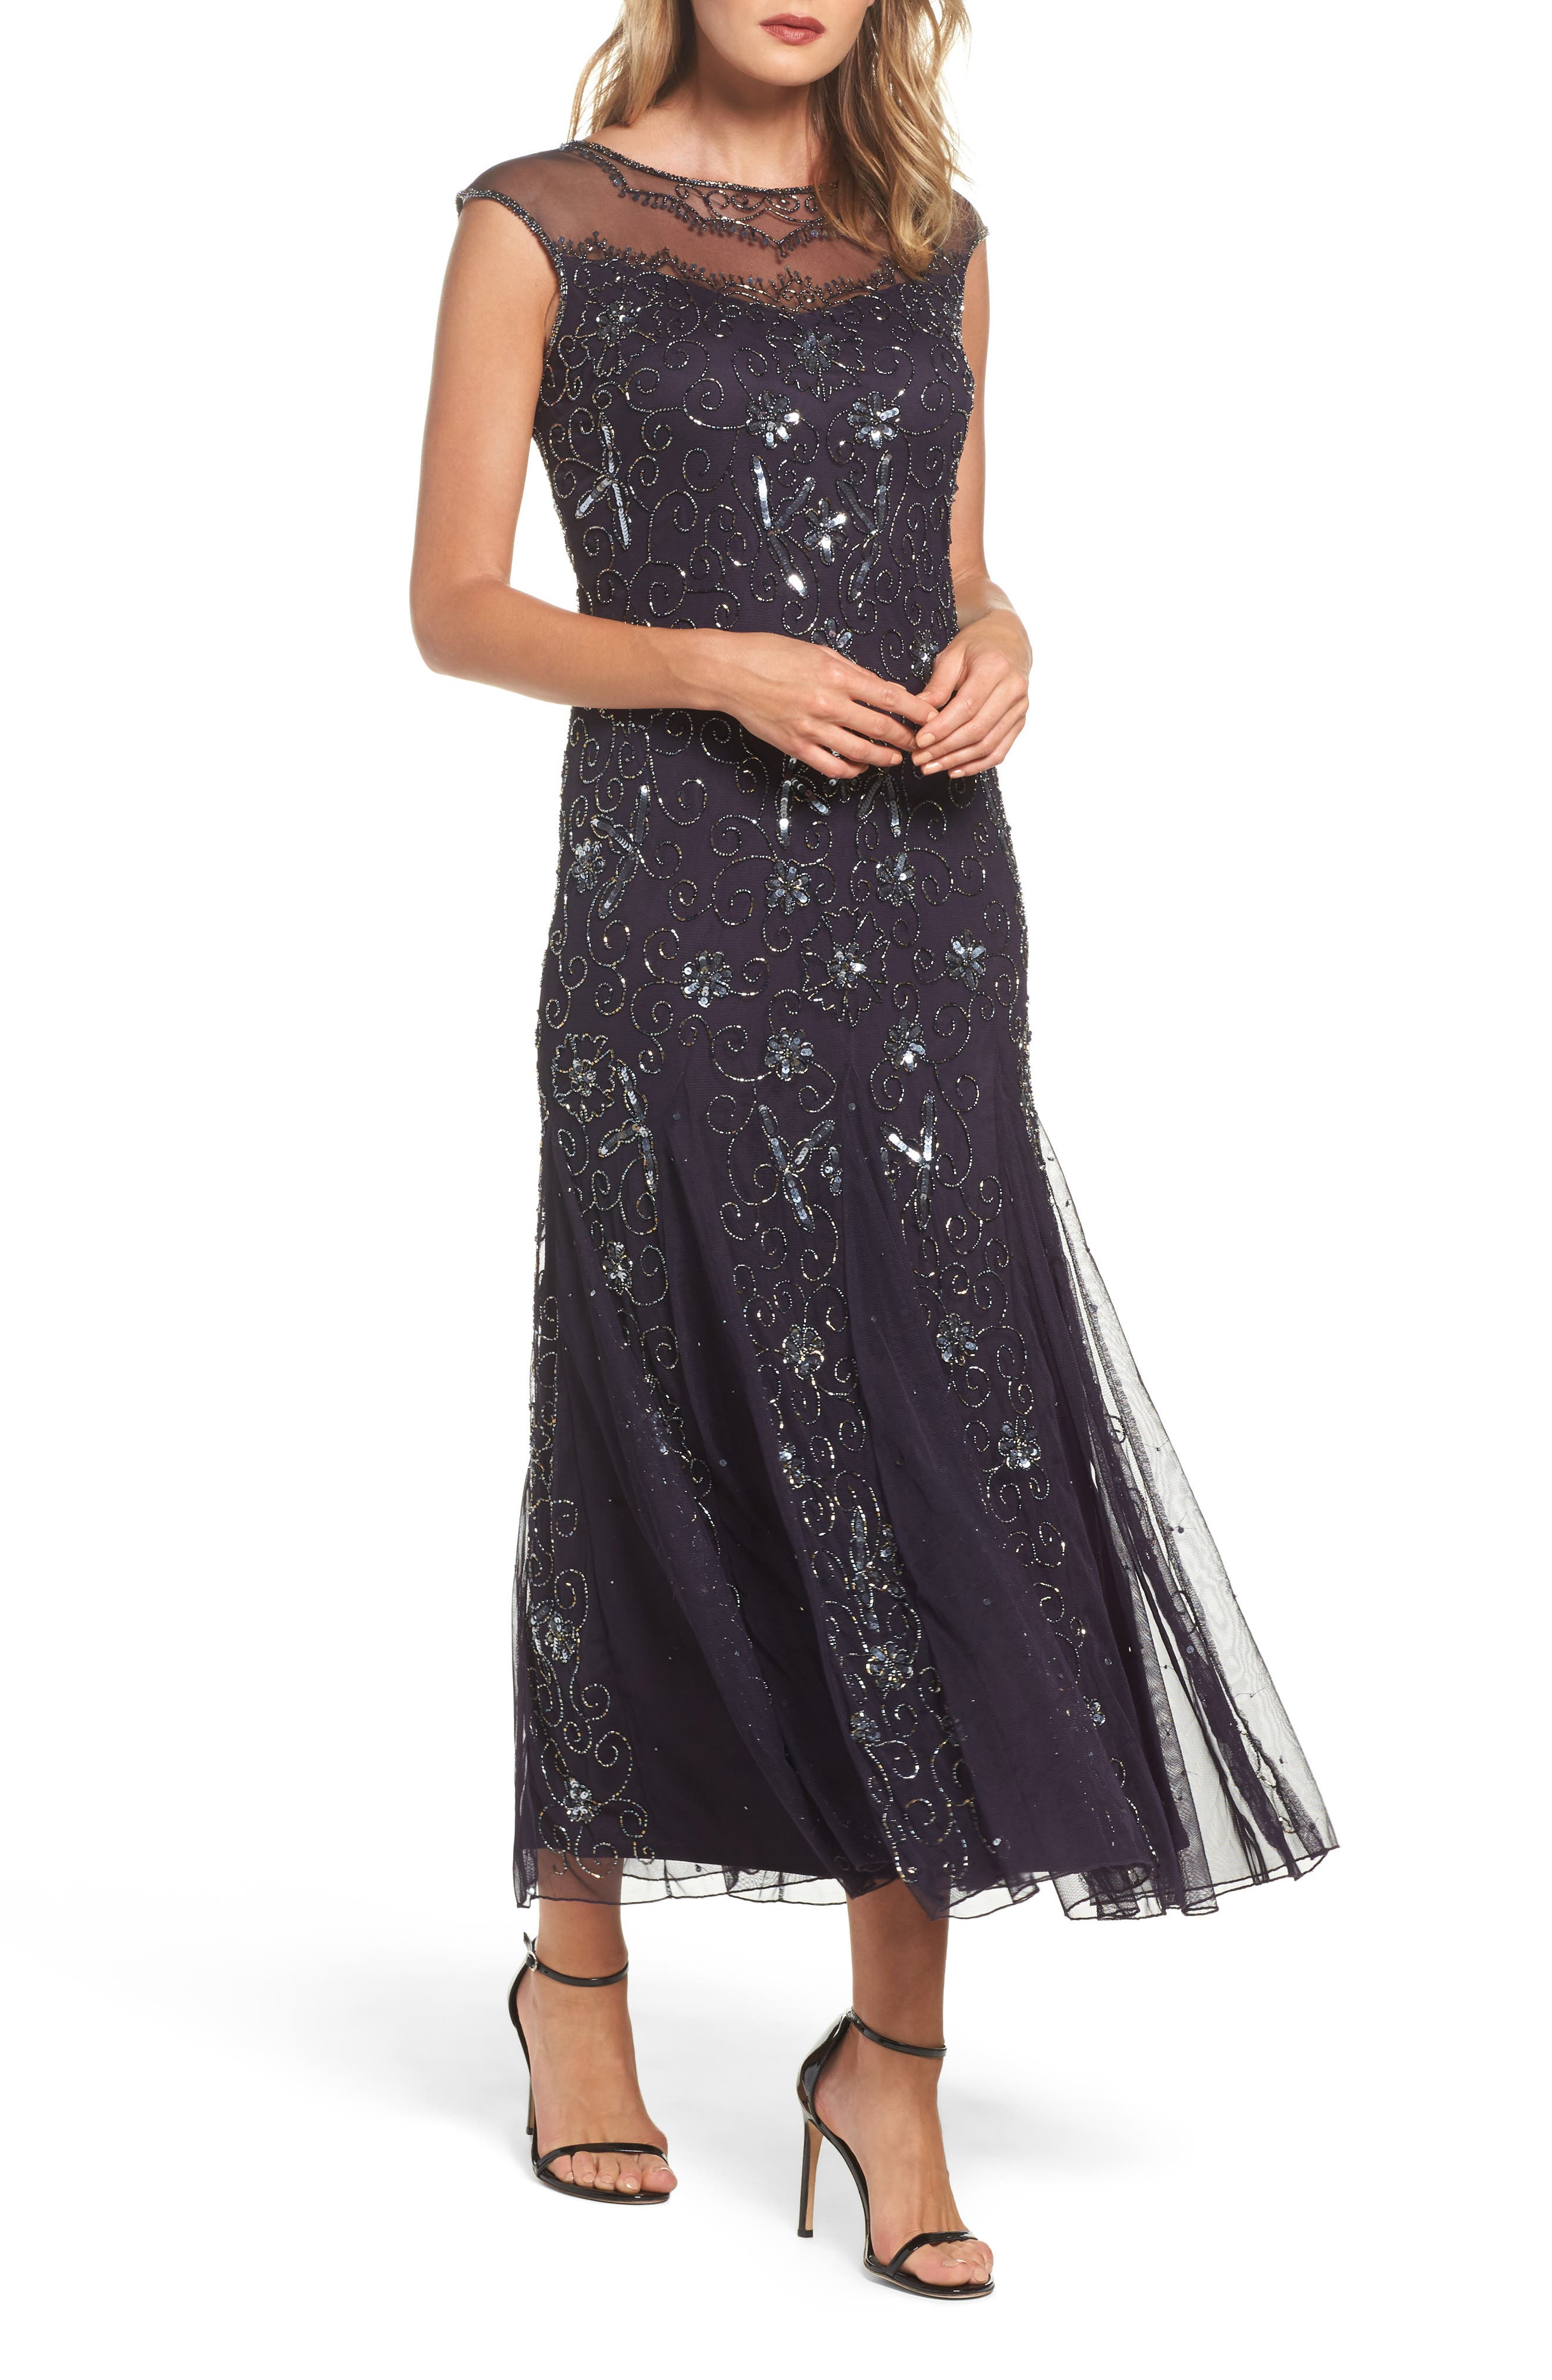 Alternate Image 1 Selected - Pisarro Nights Embellished Midi Dress (Regular & Petite)